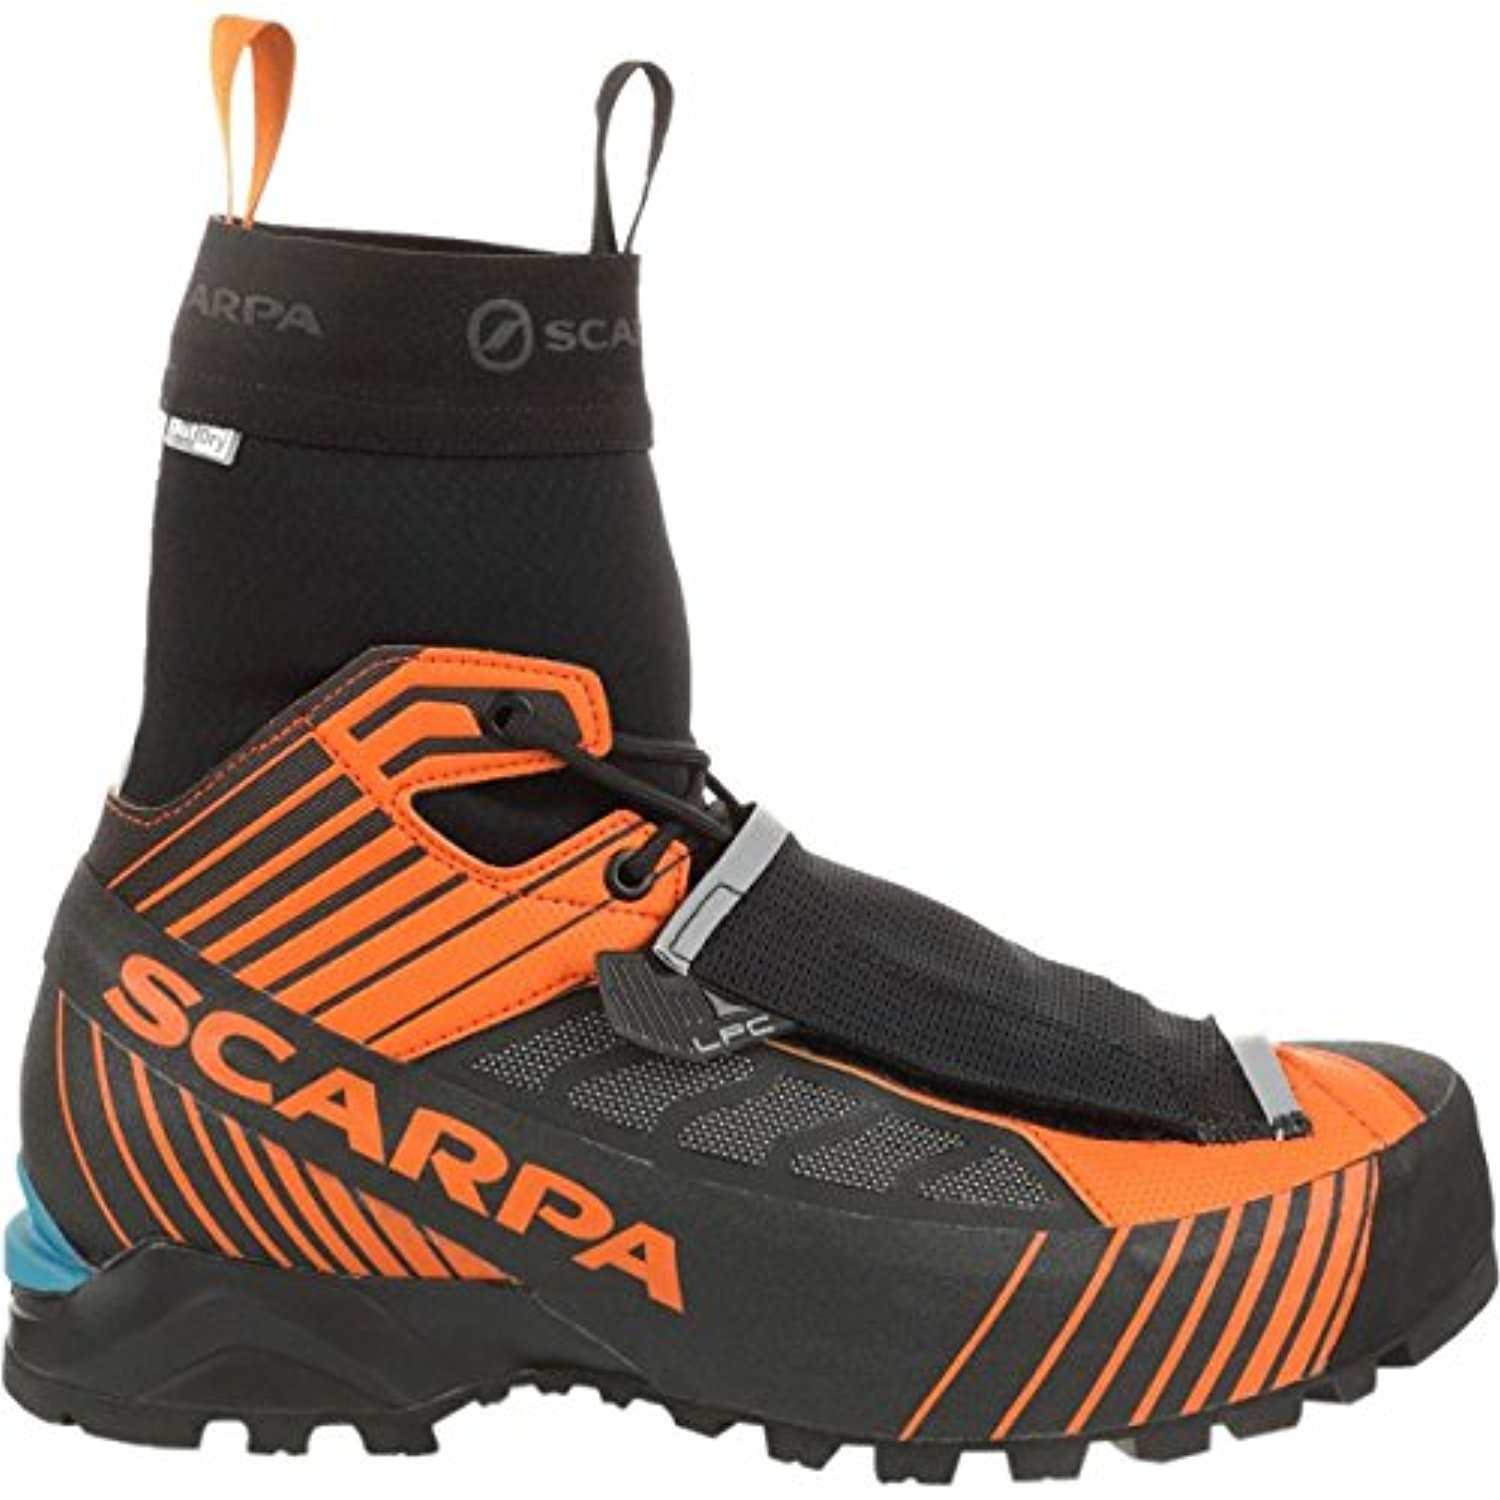 Scarpa Ribelle Tech OD Mountaineering Boots & E-Tip Glove Bundle